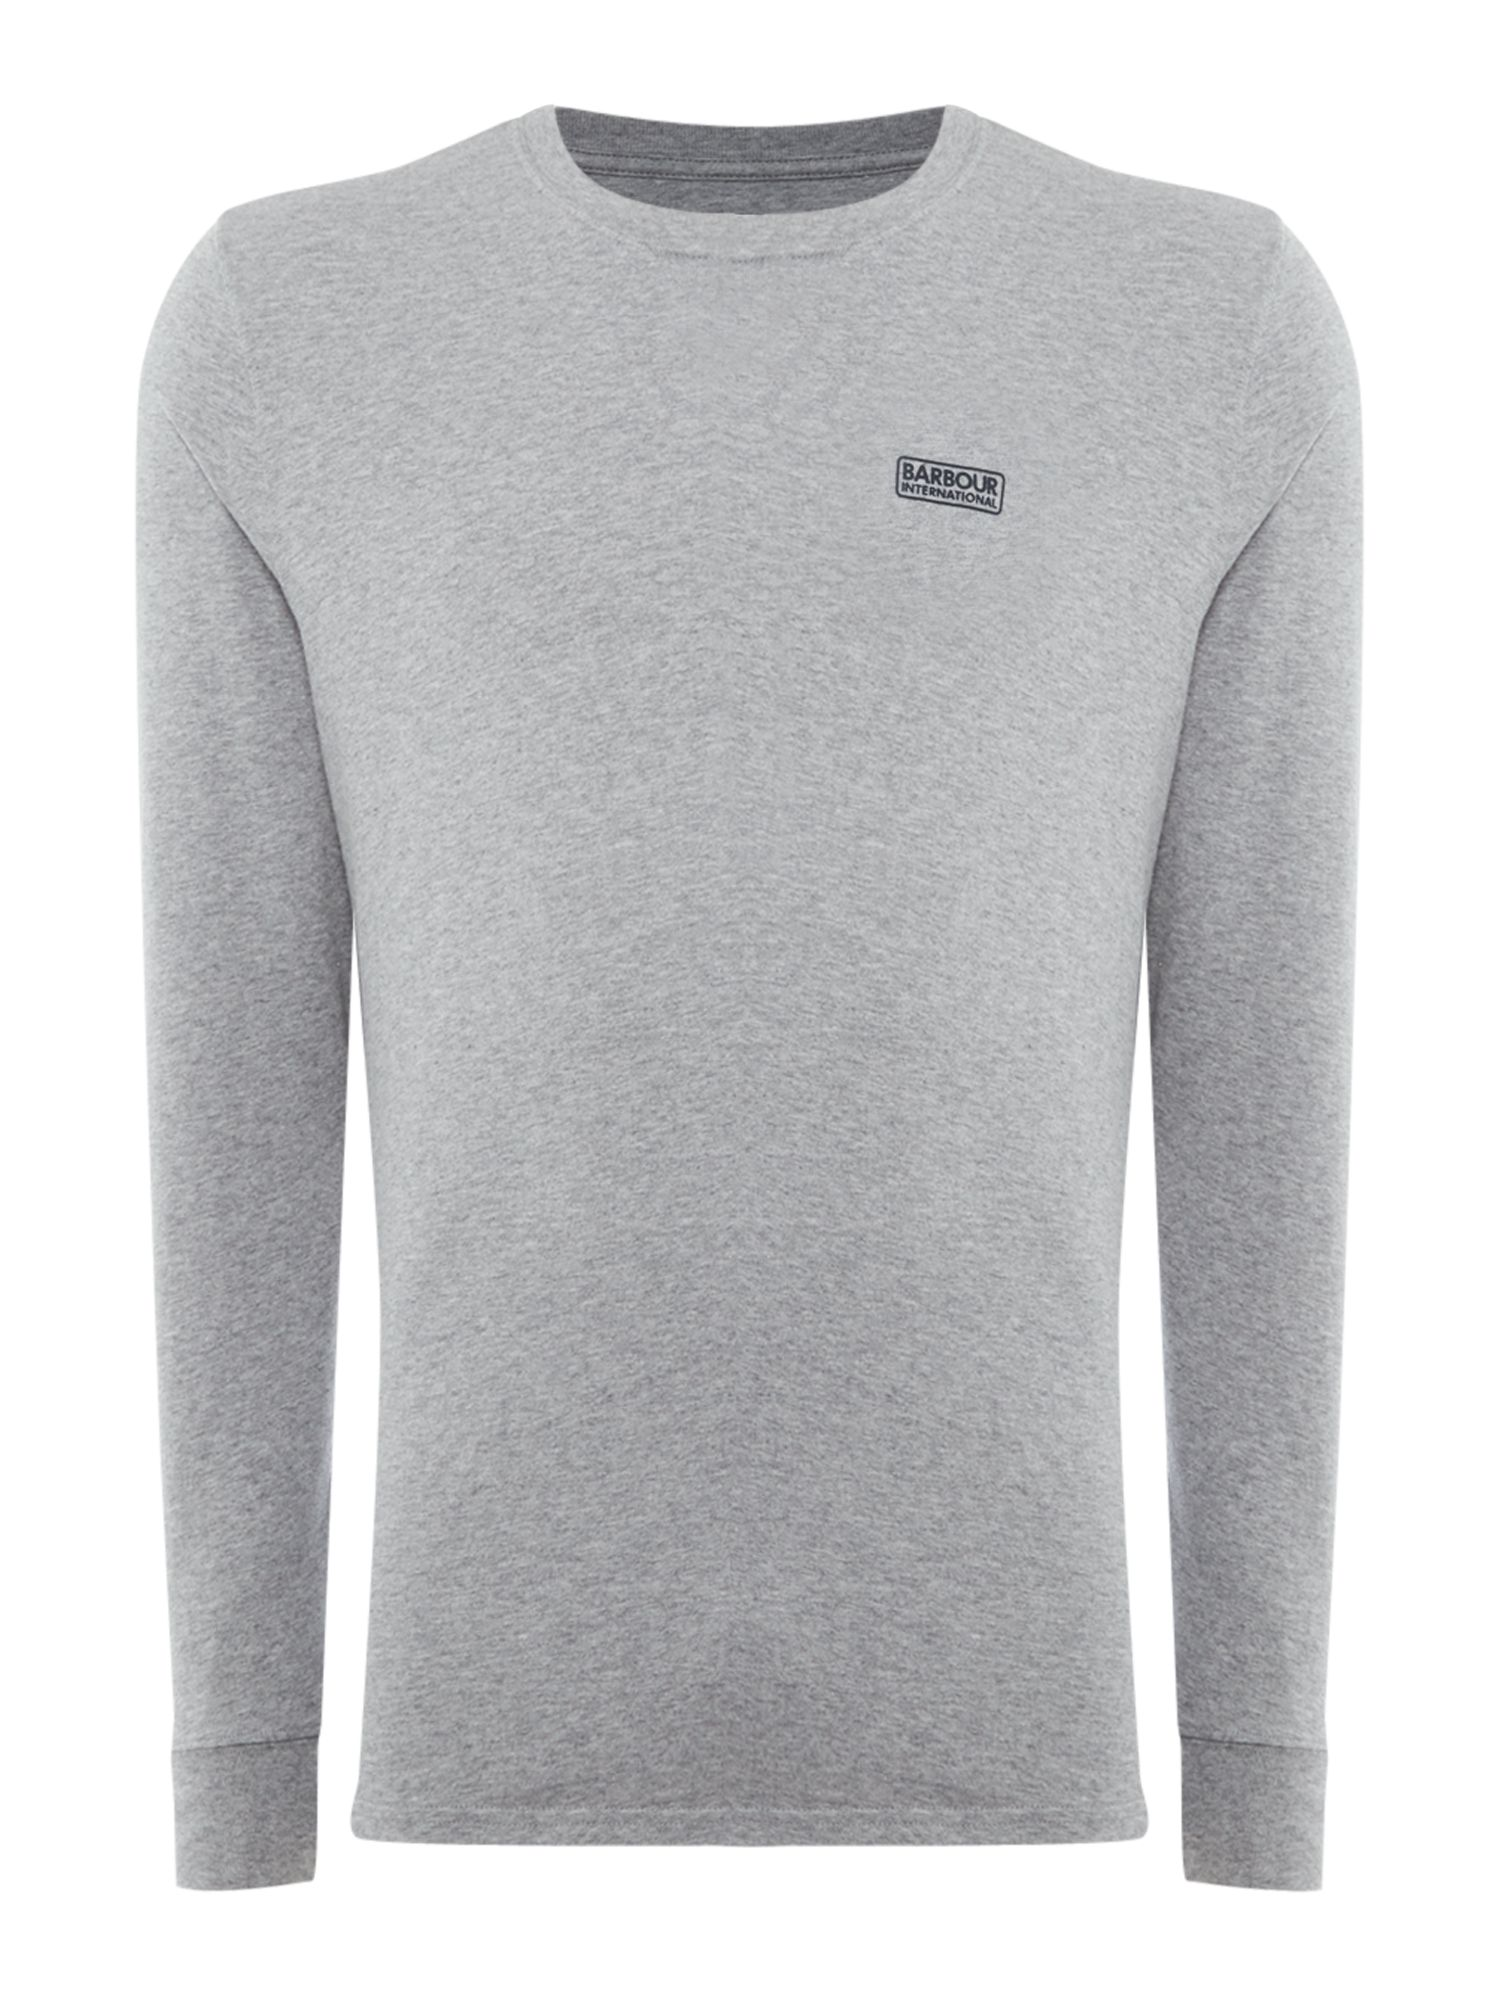 Men's Barbour Long sleeve international logo tee, Grey Marl